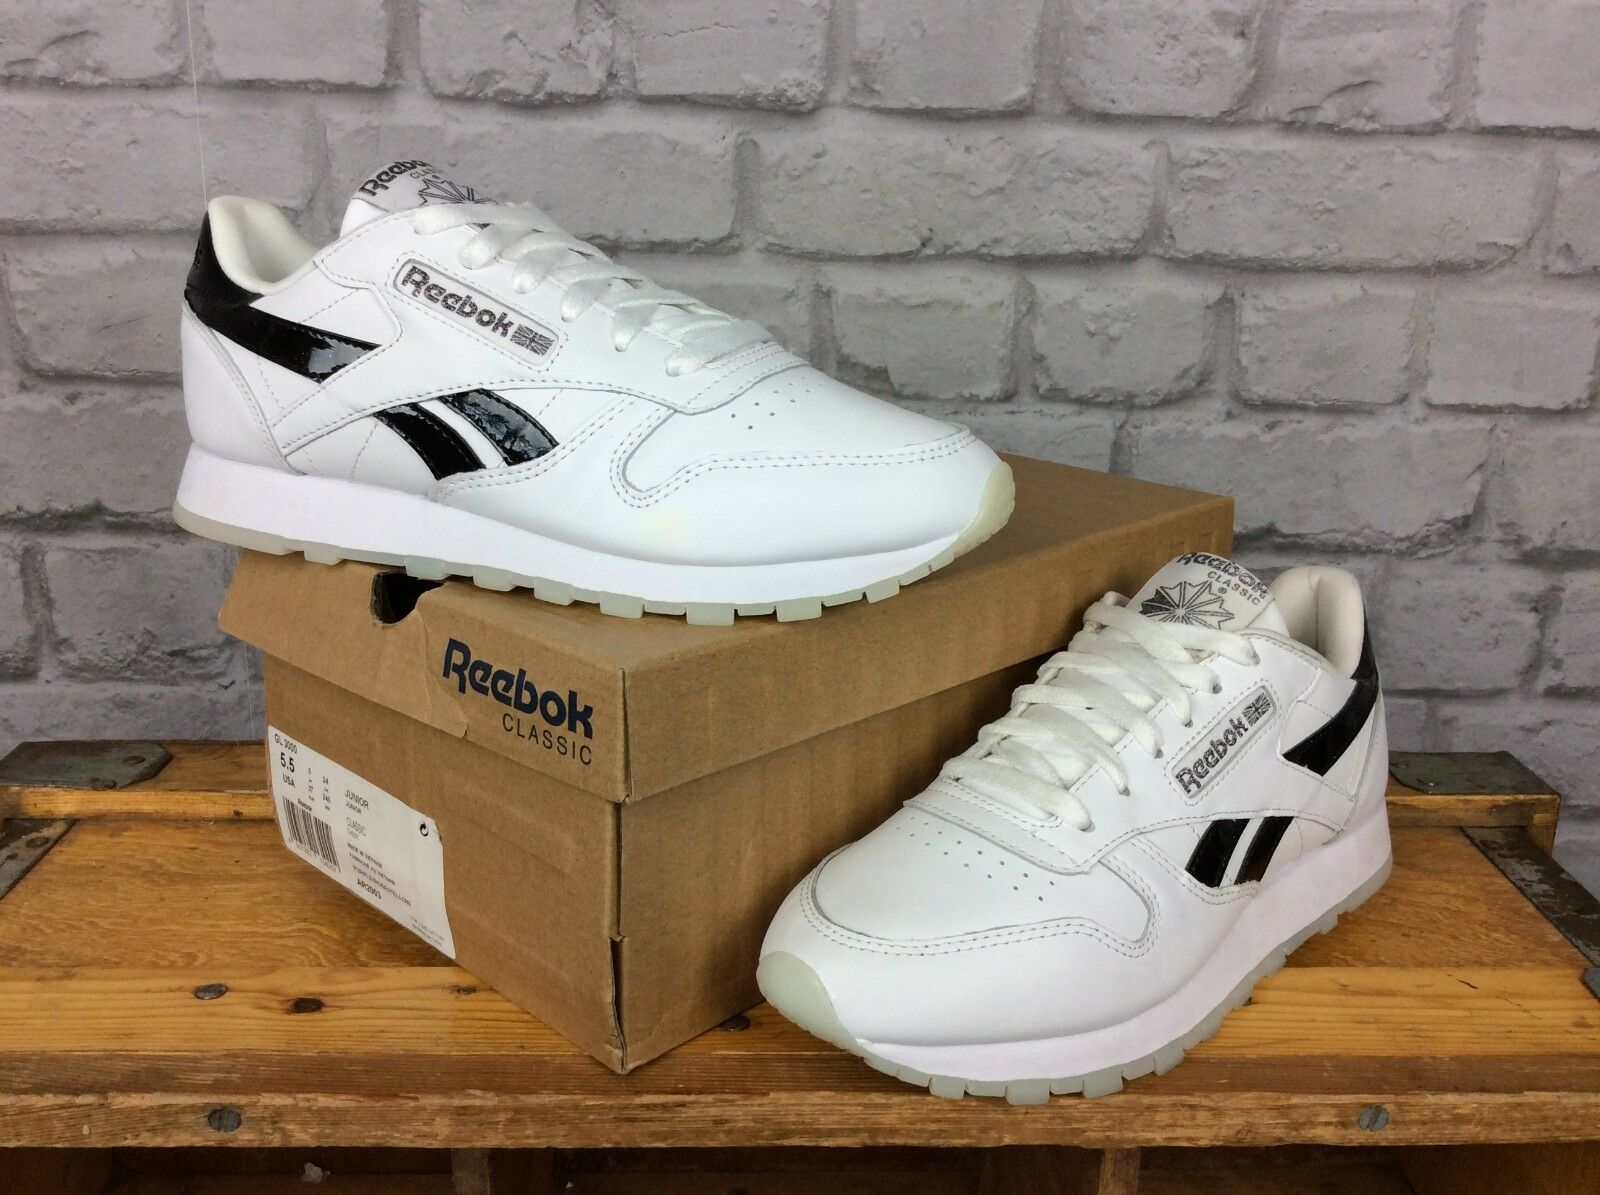 REEBOK LADIES UK 5.5 EU 38 blanc LEATHER CLASSIC TRAINERS TRAINERS TRAINERS HOLOGRAPHIC BACK 9e7513